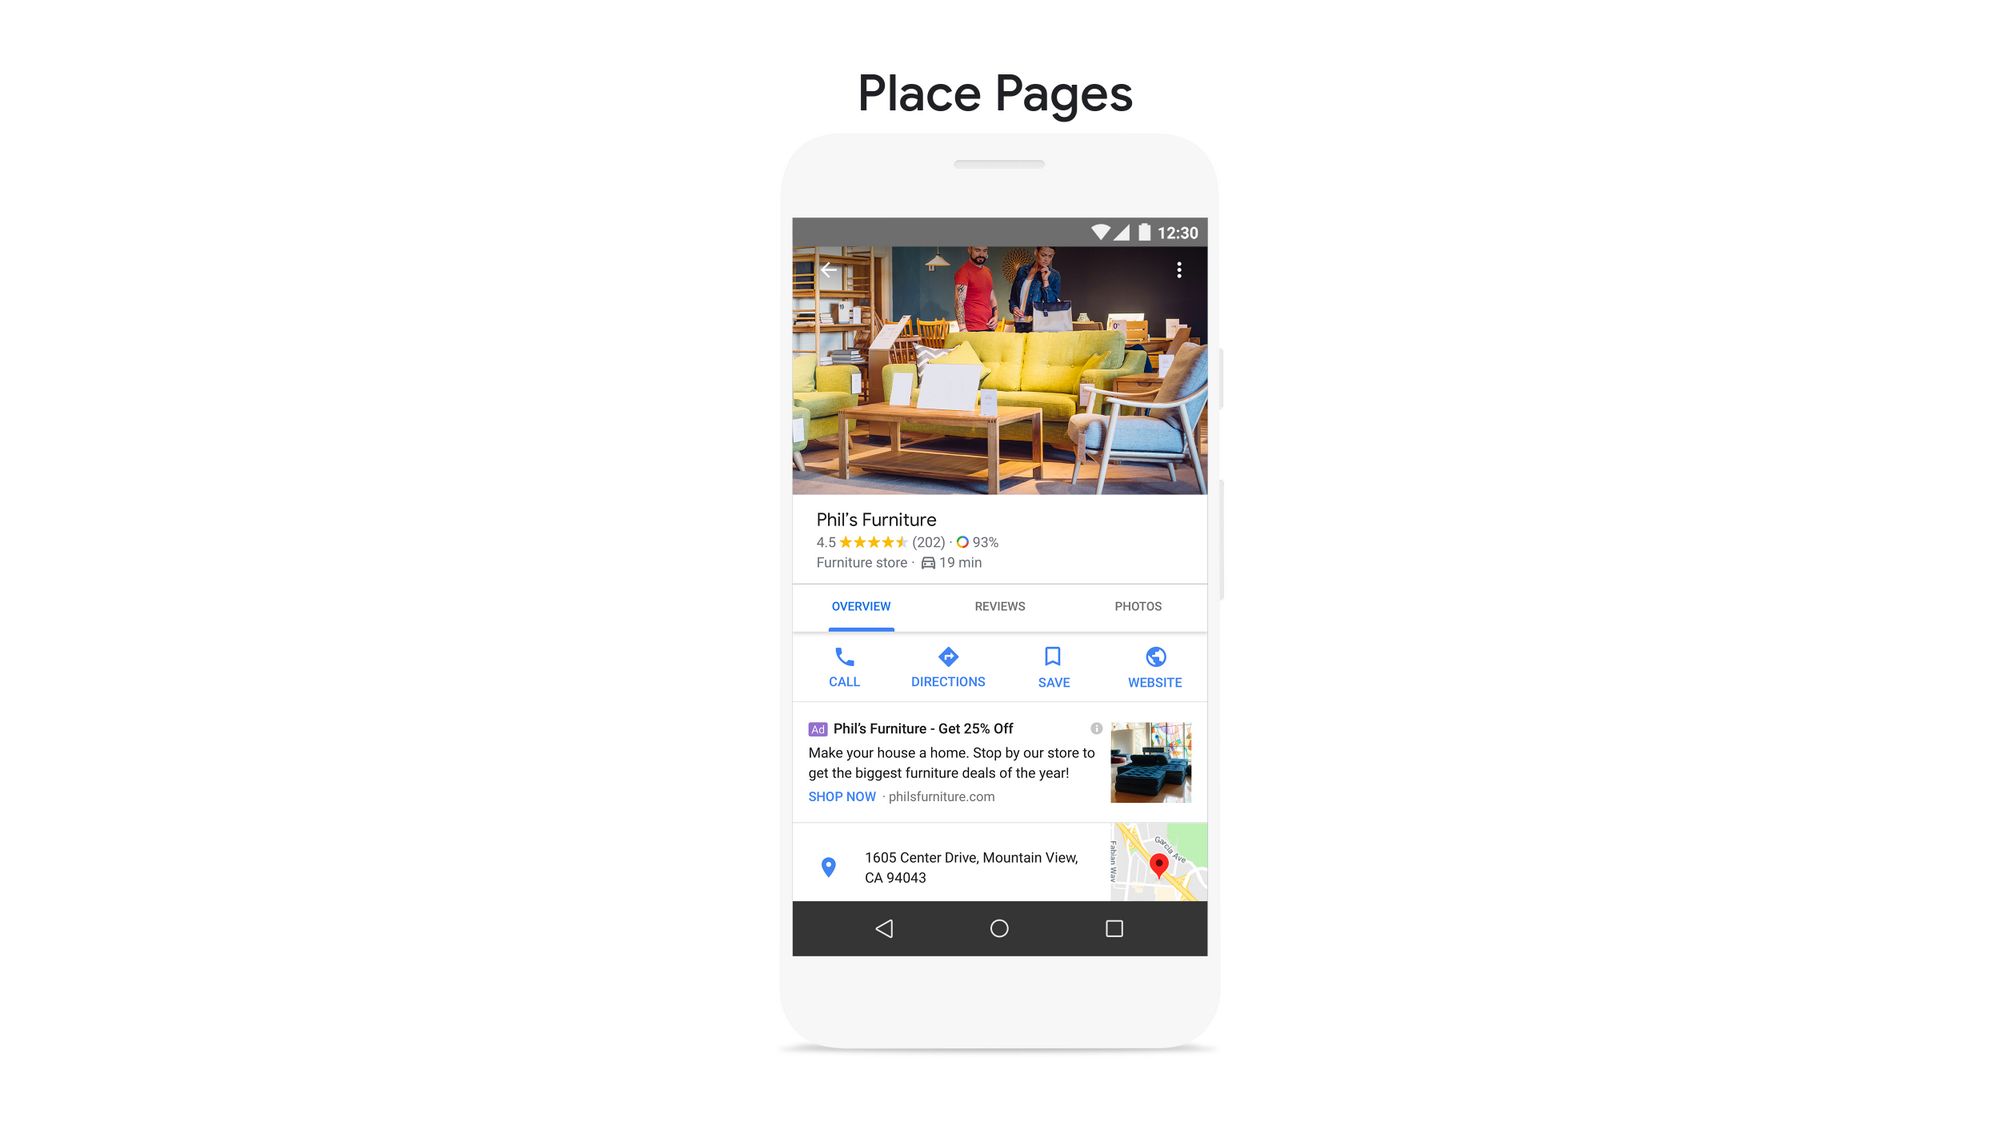 Place Pages